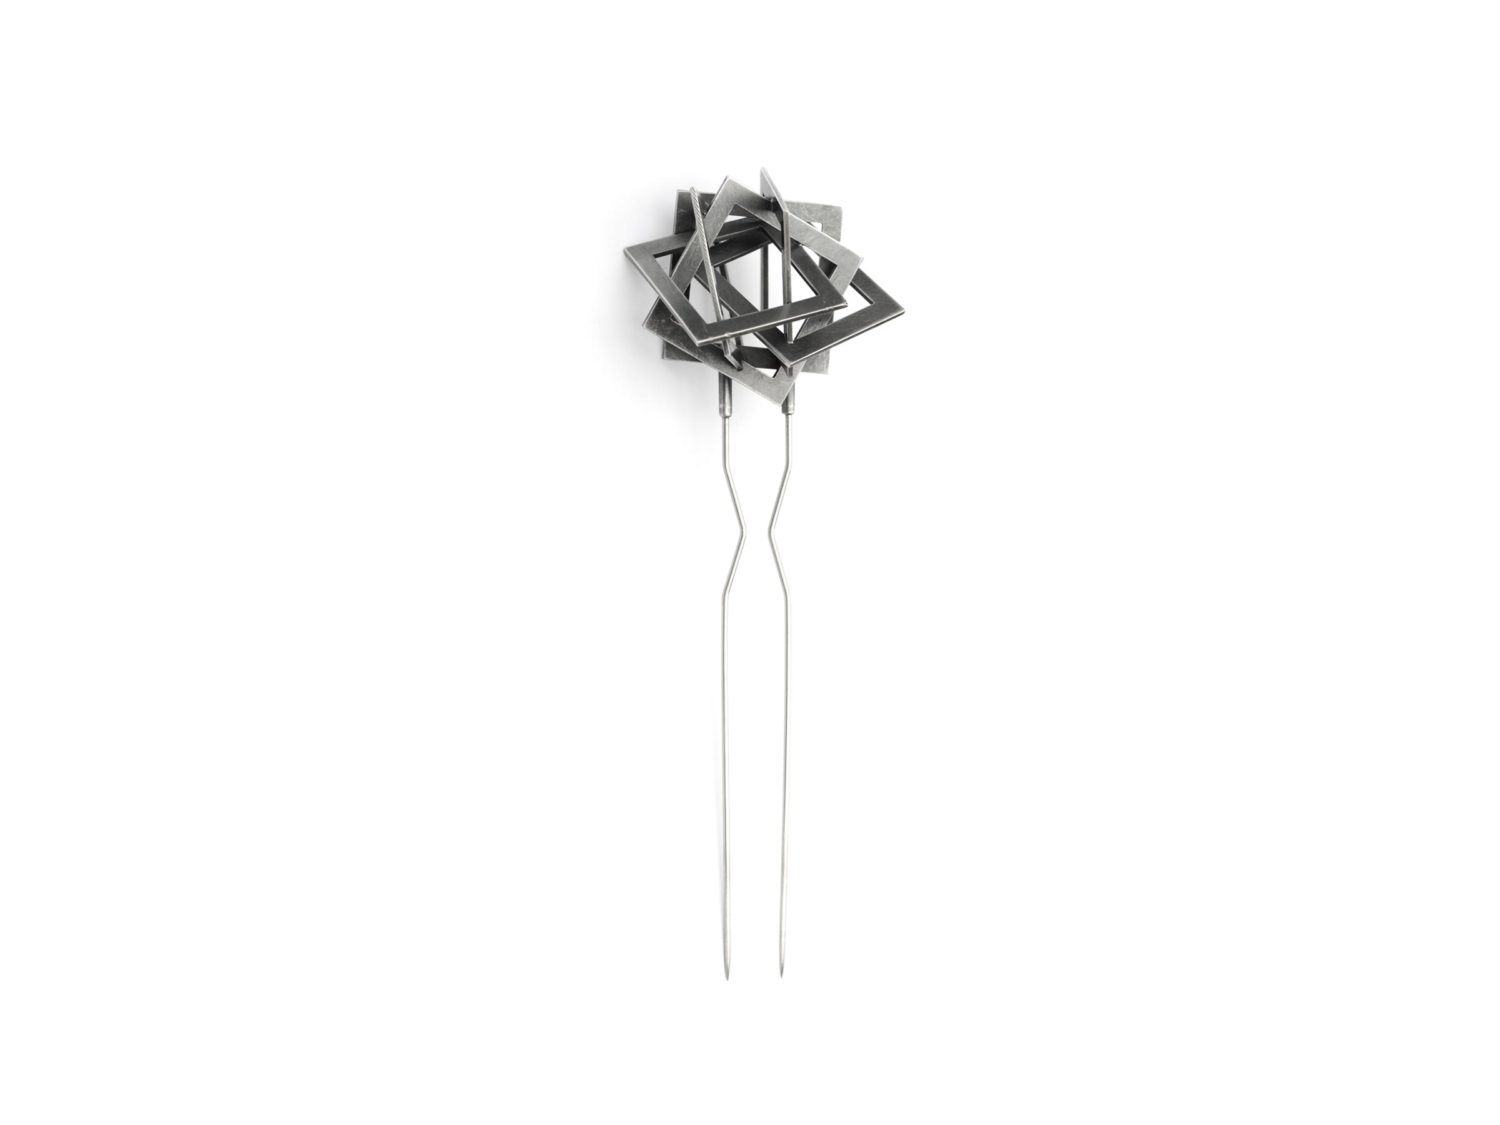 Brooch, oxidized silver, stainless steel, 2006